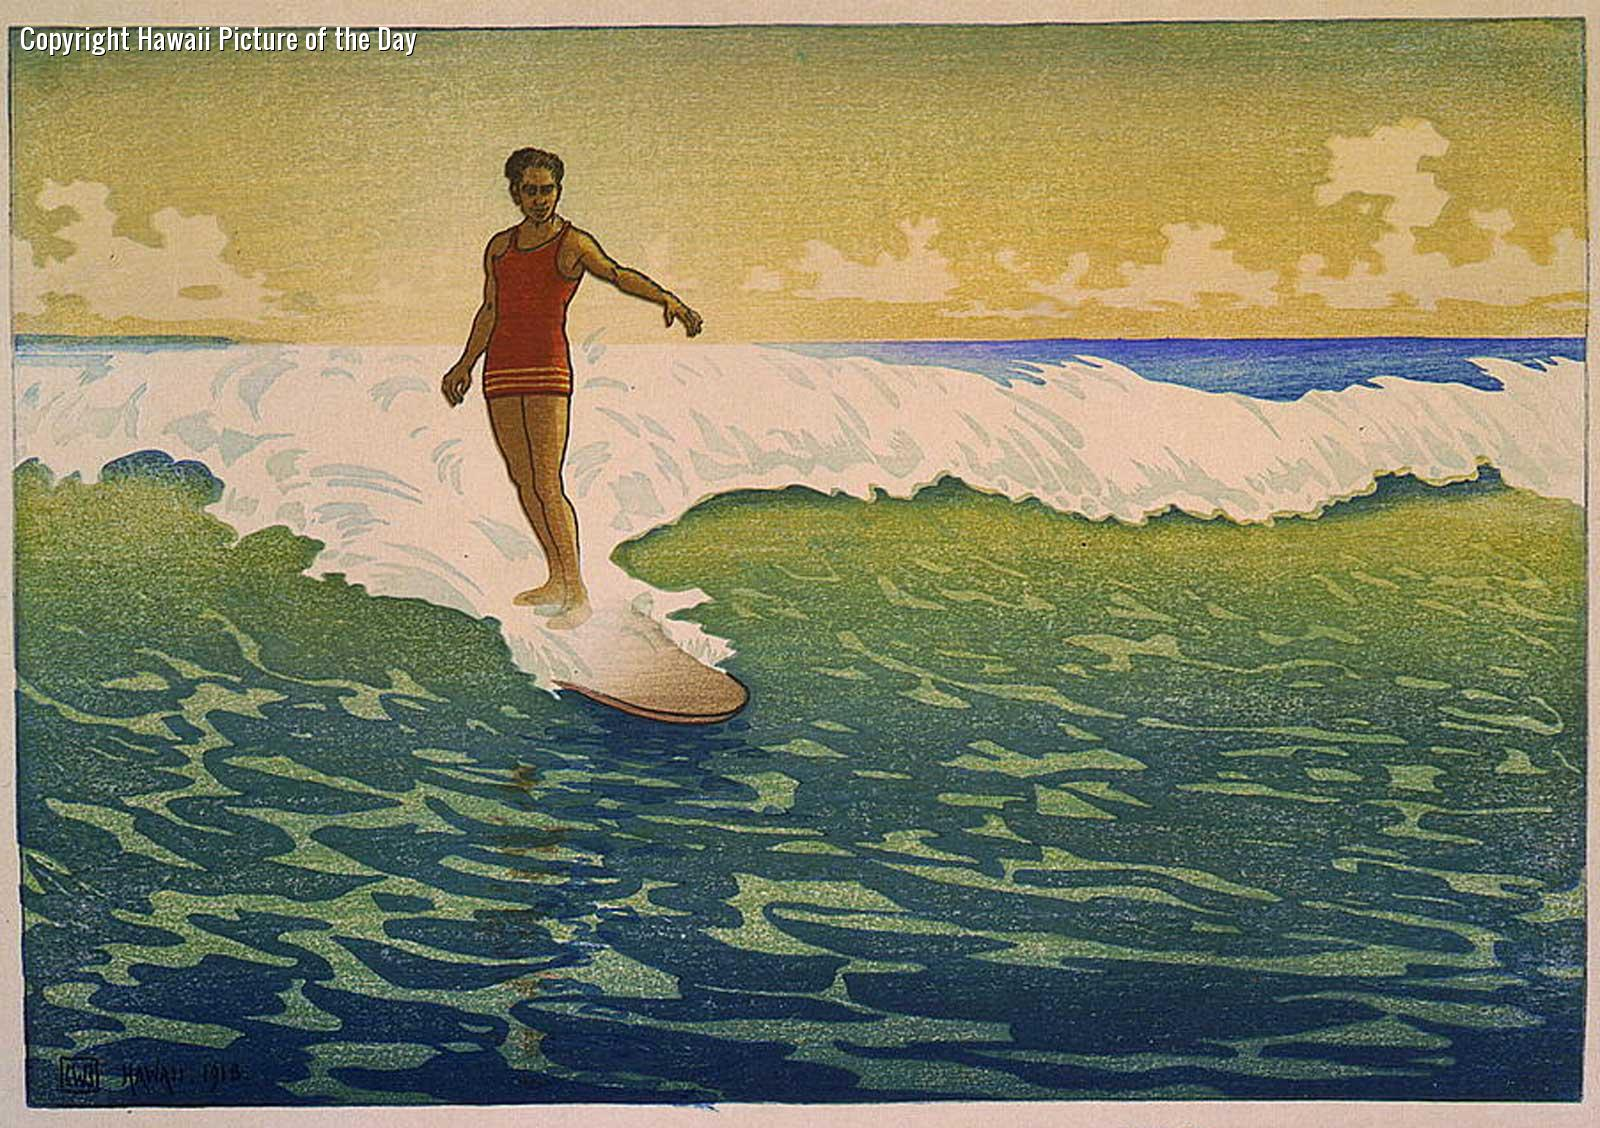 Longboard Surfing Wallpaper Download wallpaper 1600 x 1600x1128